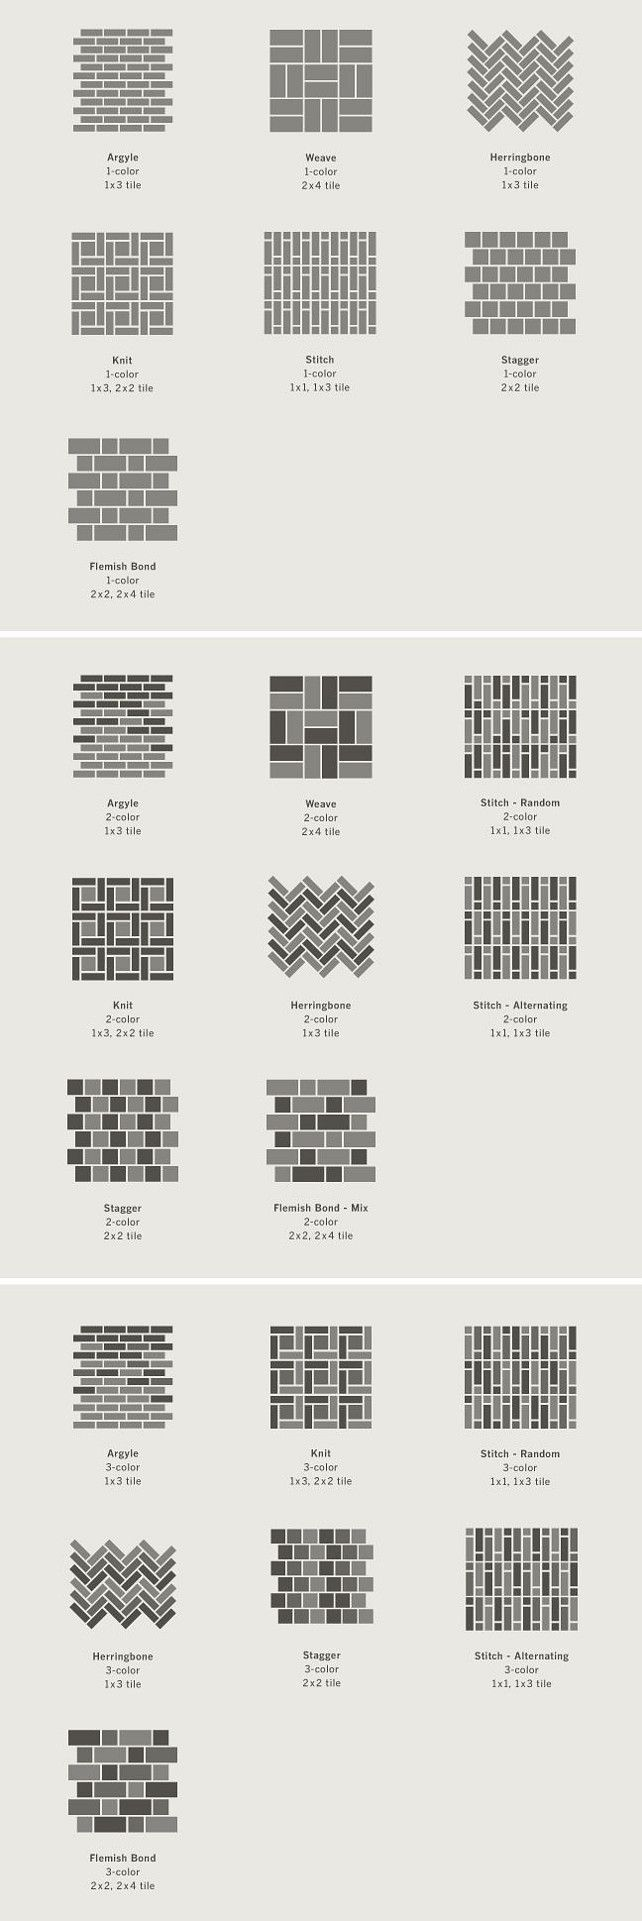 Best 25 tile layout patterns ideas on pinterest tile layout tiling layout patterns tile layout tiling layout ideas great ideas for backsplash or dailygadgetfo Choice Image